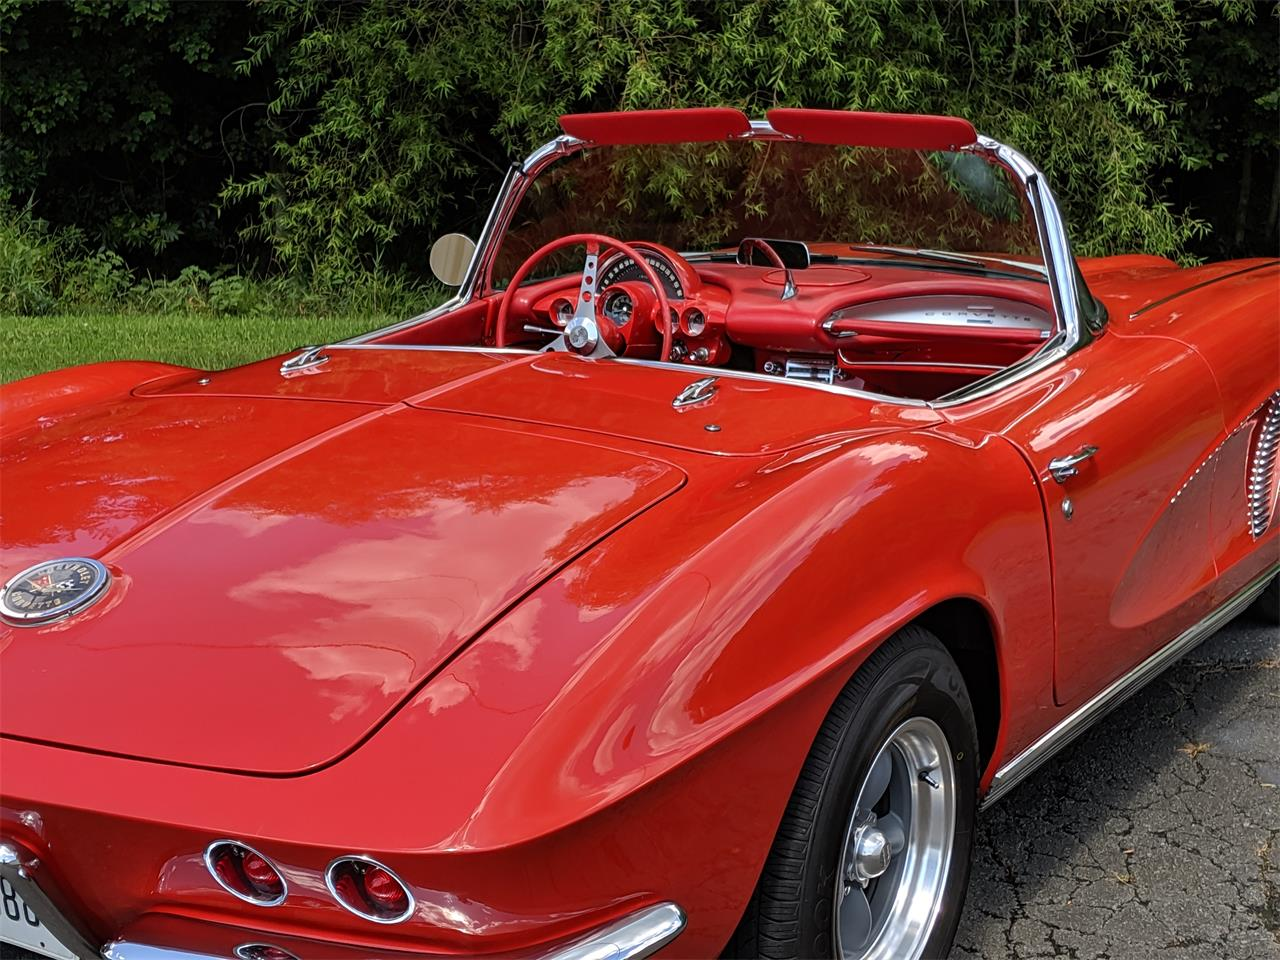 Large Picture of '62 Corvette - $62,500.00 Offered by a Private Seller - QL7V